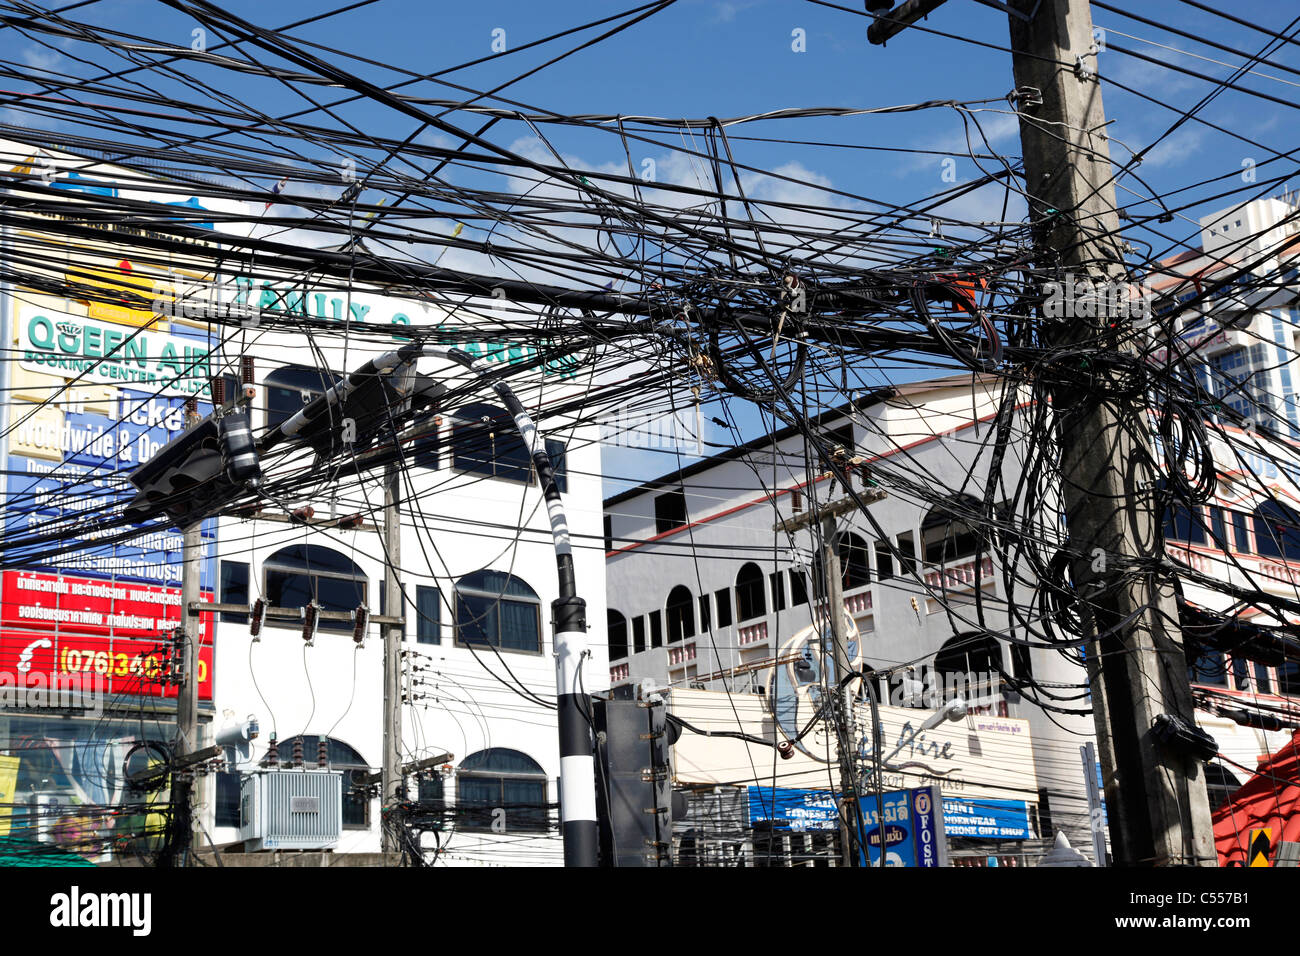 Telegraph poles and dangerous tangled mass of electricity wires ...